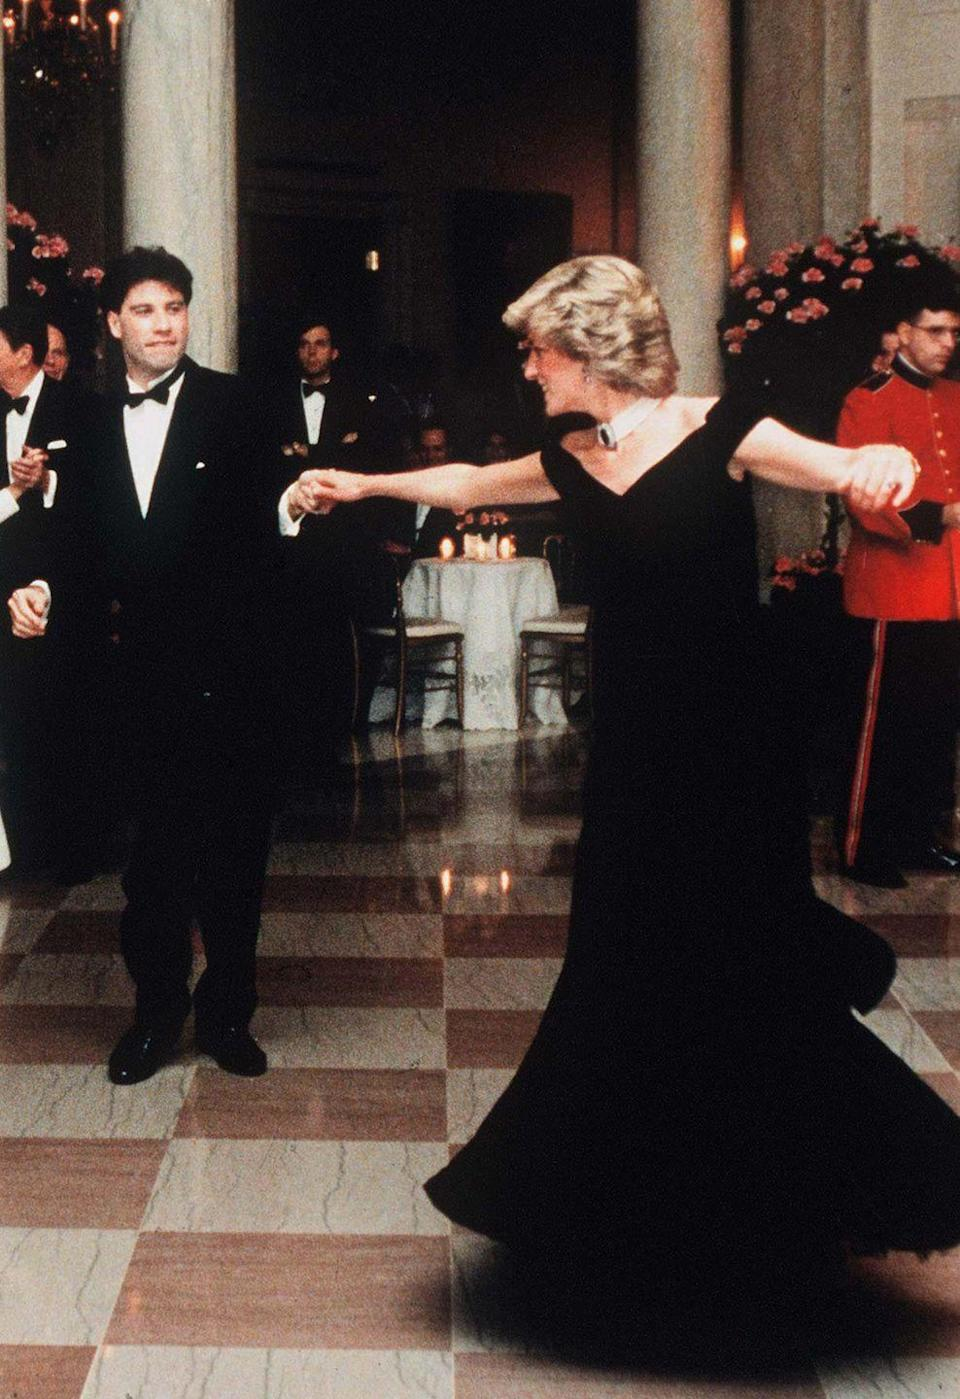 """<p>The velvet off-the-shoulder gown Princess Diana wore to a White House State Dinner in 1985 is one of the most iconic gowns worn by the royal. It was dubbed the """"<a href=""""https://www.townandcountrymag.com/society/tradition/a33445054/princess-diana-travolta-dress-kensington-palace-display-coronavirus/"""" rel=""""nofollow noopener"""" target=""""_blank"""" data-ylk=""""slk:Travolta Dress"""" class=""""link rapid-noclick-resp"""">Travolta Dress</a>"""" due to the heavily-circulated photo of Diana dancing with the movie star in it.</p>"""